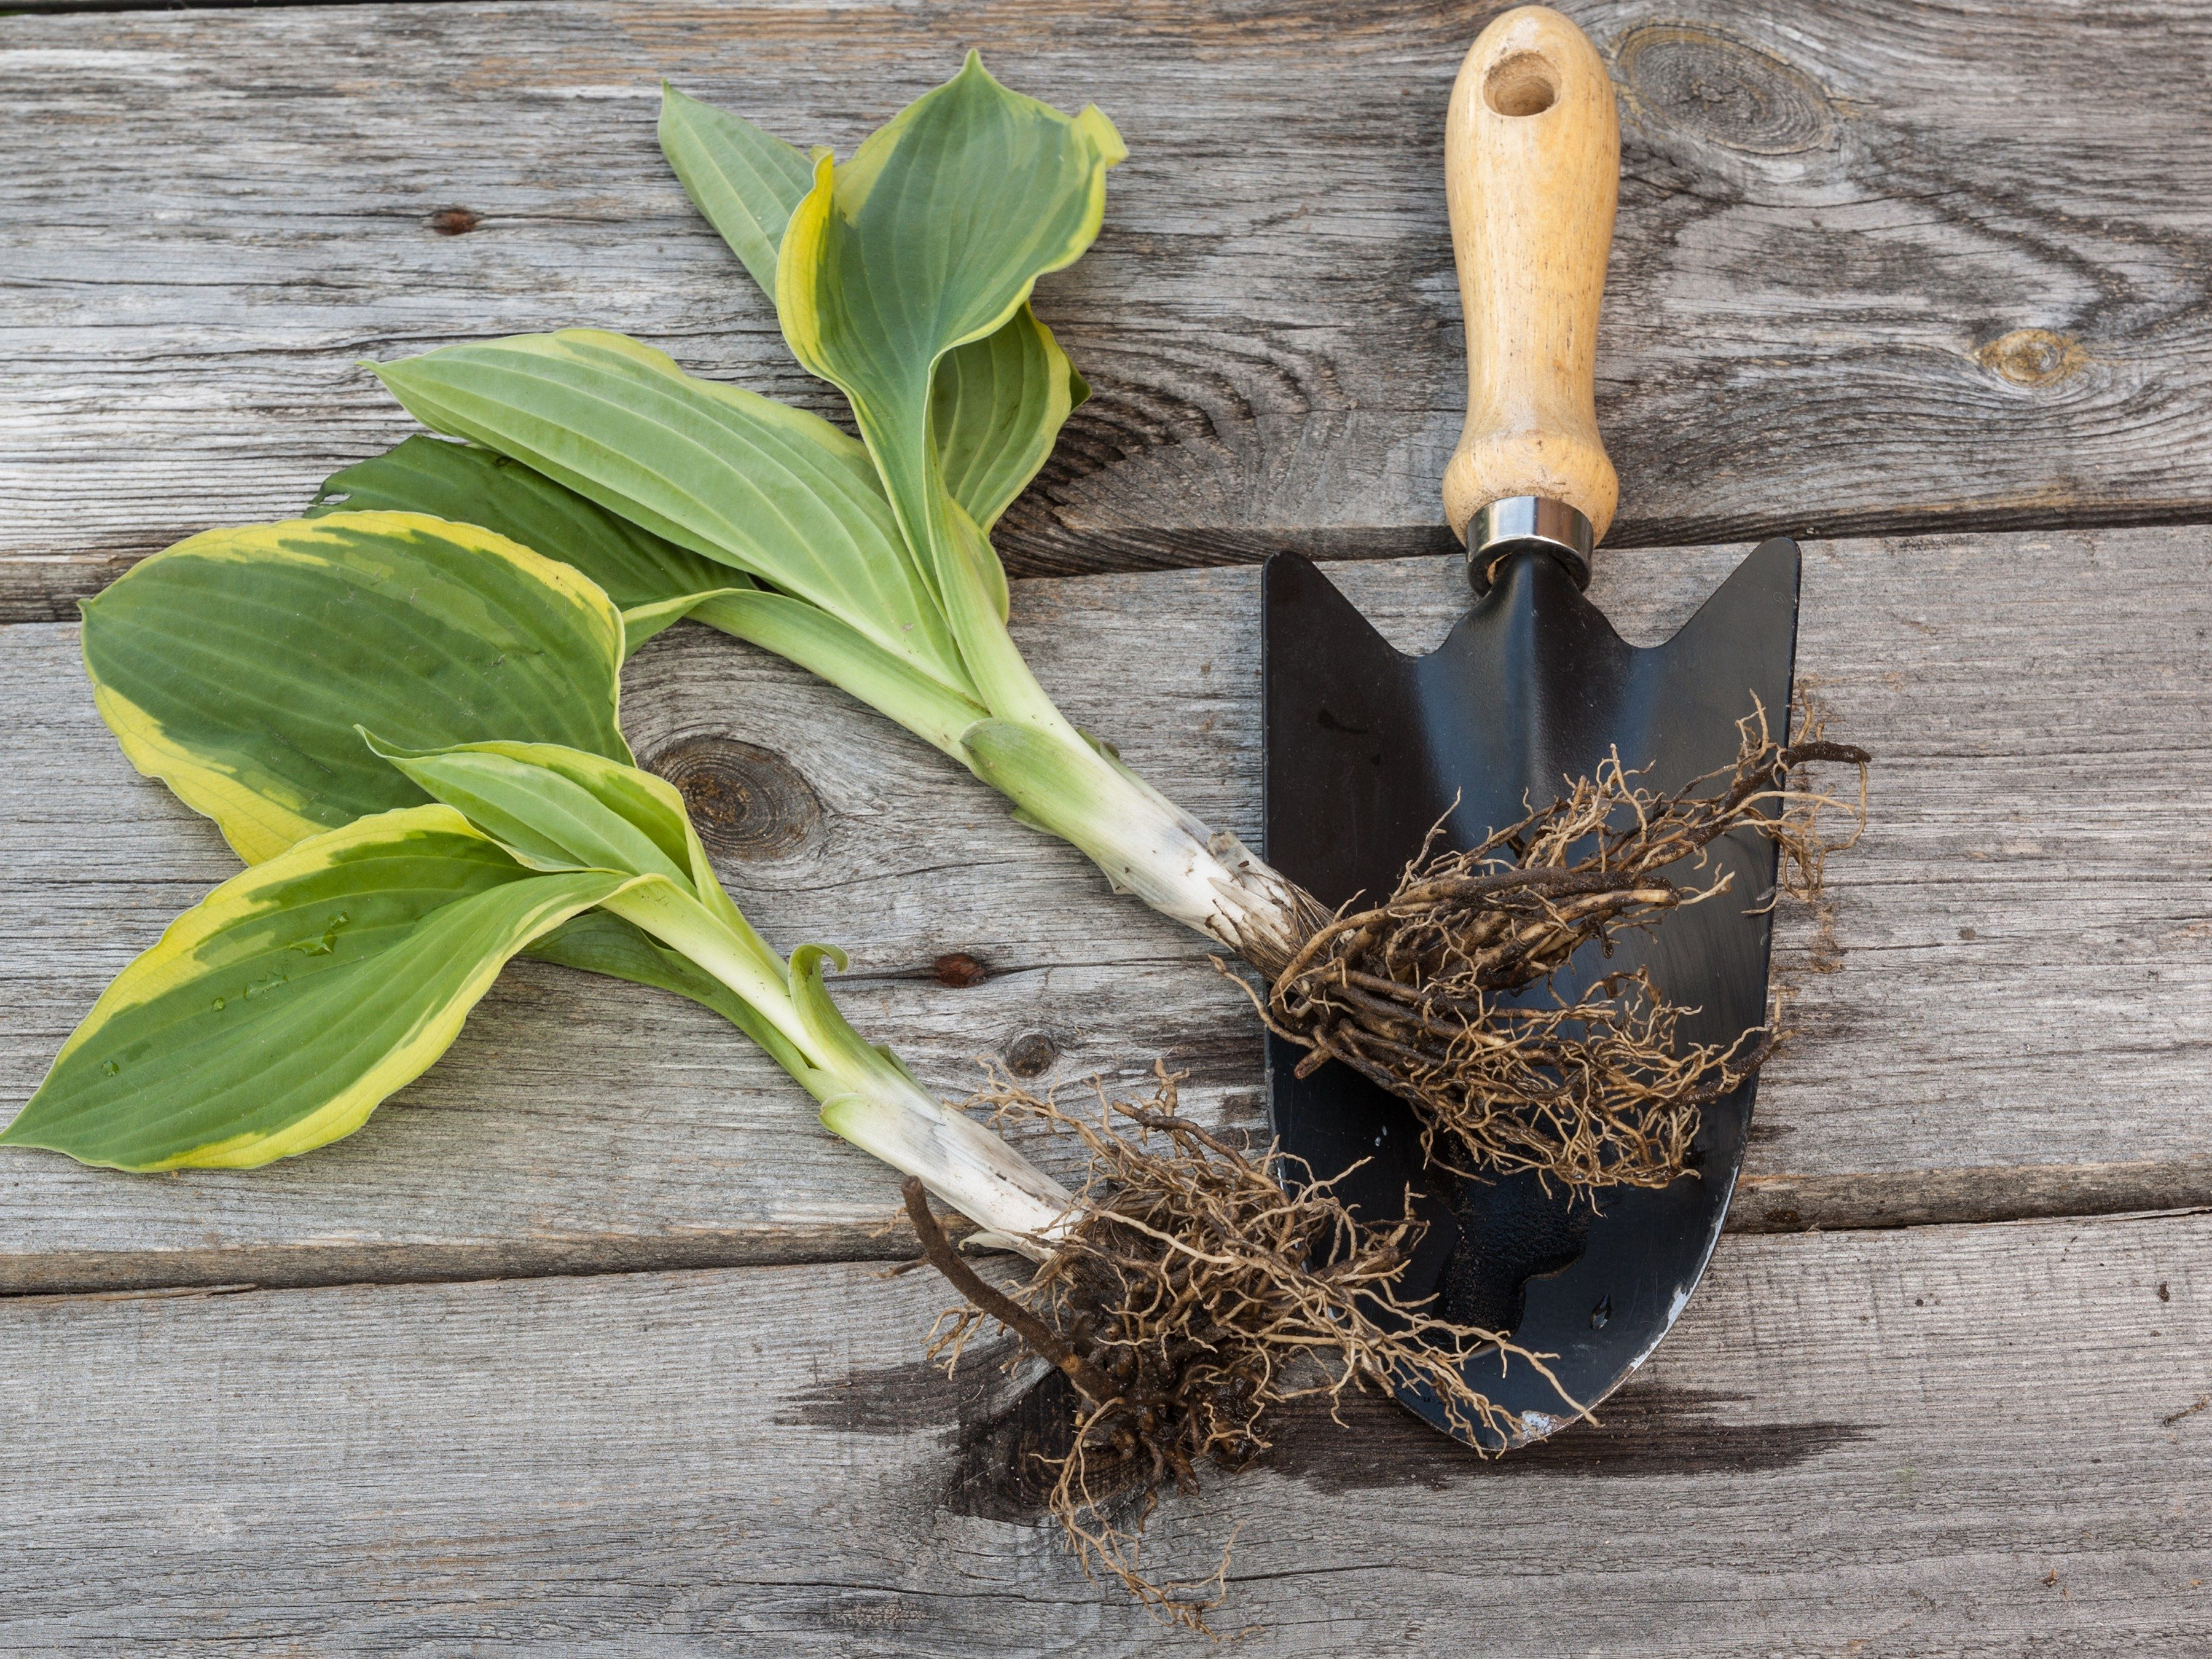 10. Get an Early Start on Hostas